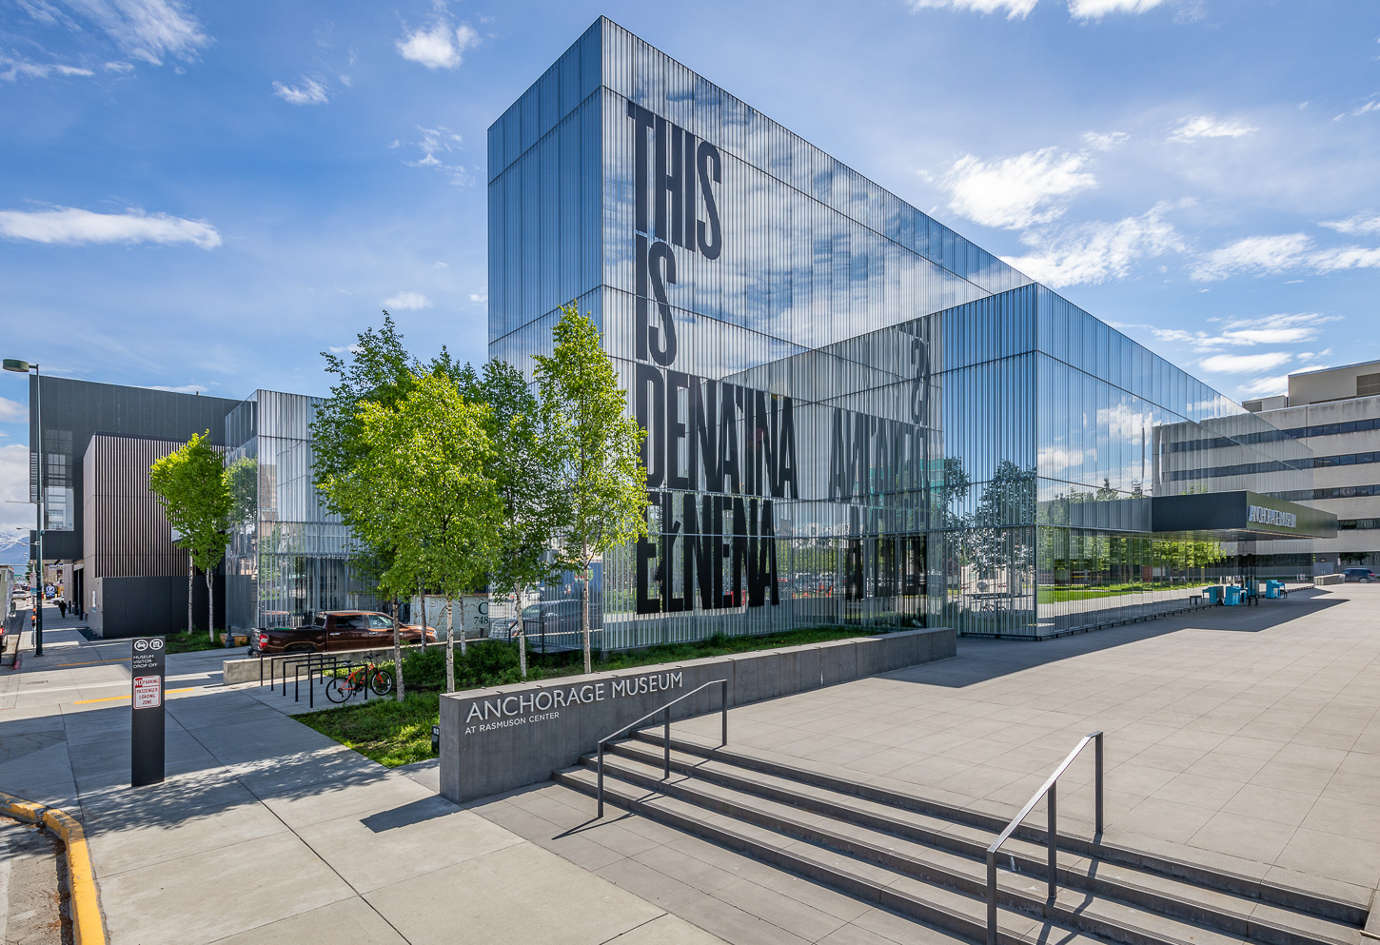 Indigenous land acknowledgment on Anchorage Museum facade. Photo courtesy of Anchorage Museum.